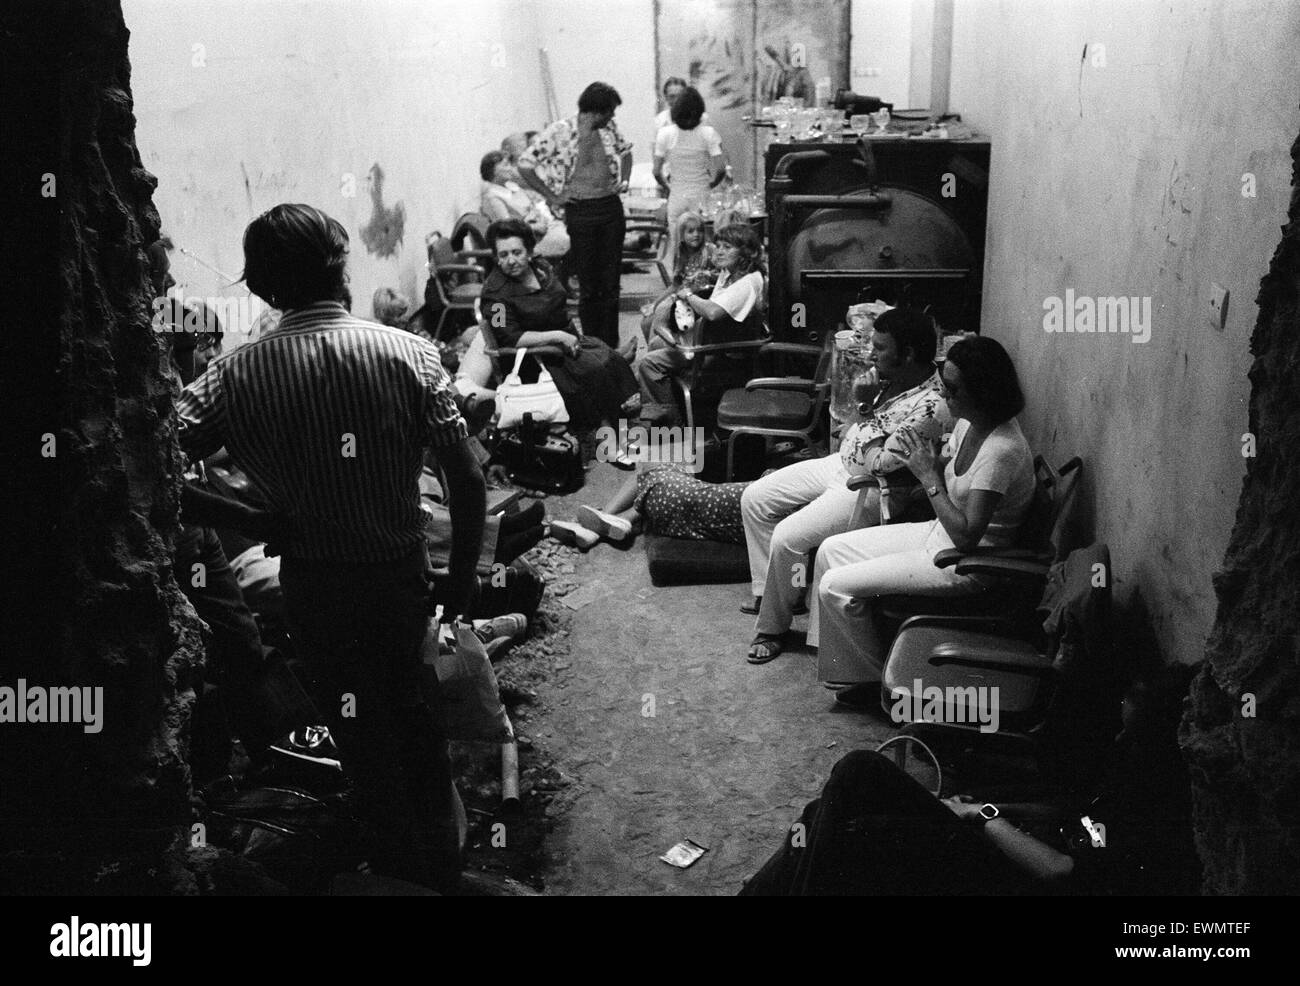 The Turkish invasion of Cyprus. Guests crowd together in the basement area of the Ledra Palace Hotel. The Ledra - Stock Image